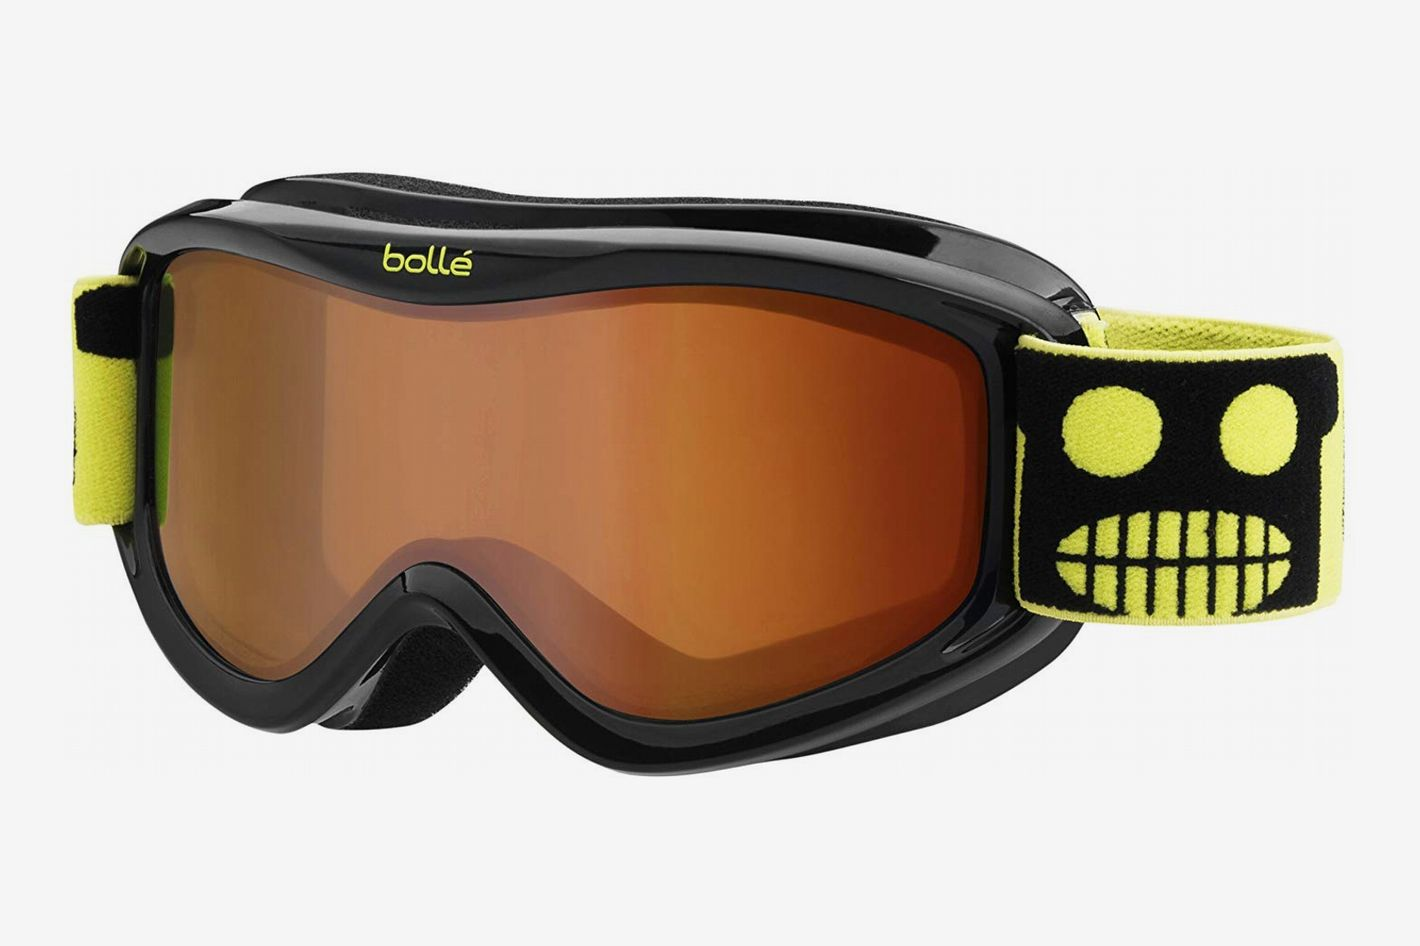 a034e382a36c Best Ski Goggles for Kids. Bolle Amp Goggles